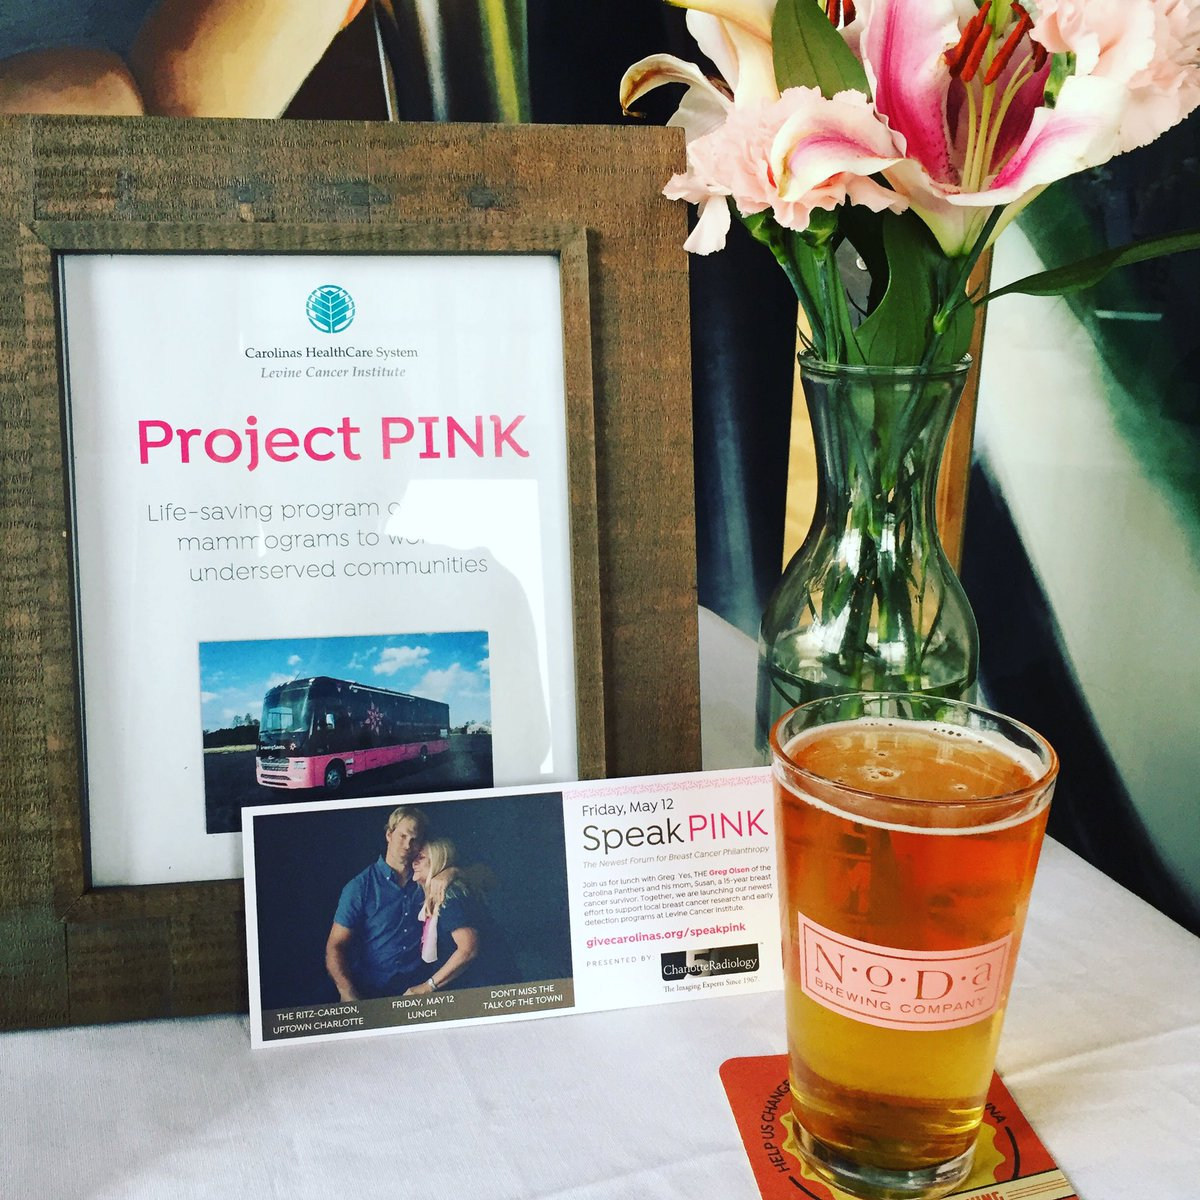 Rainy day blues? We&#39;ve got you covered. Visit @NoDaBrewing tonight until 7 to support #breastcancer outreach #screeningsaves @carolinas #LCI <br>http://pic.twitter.com/MhhRBFDYOg